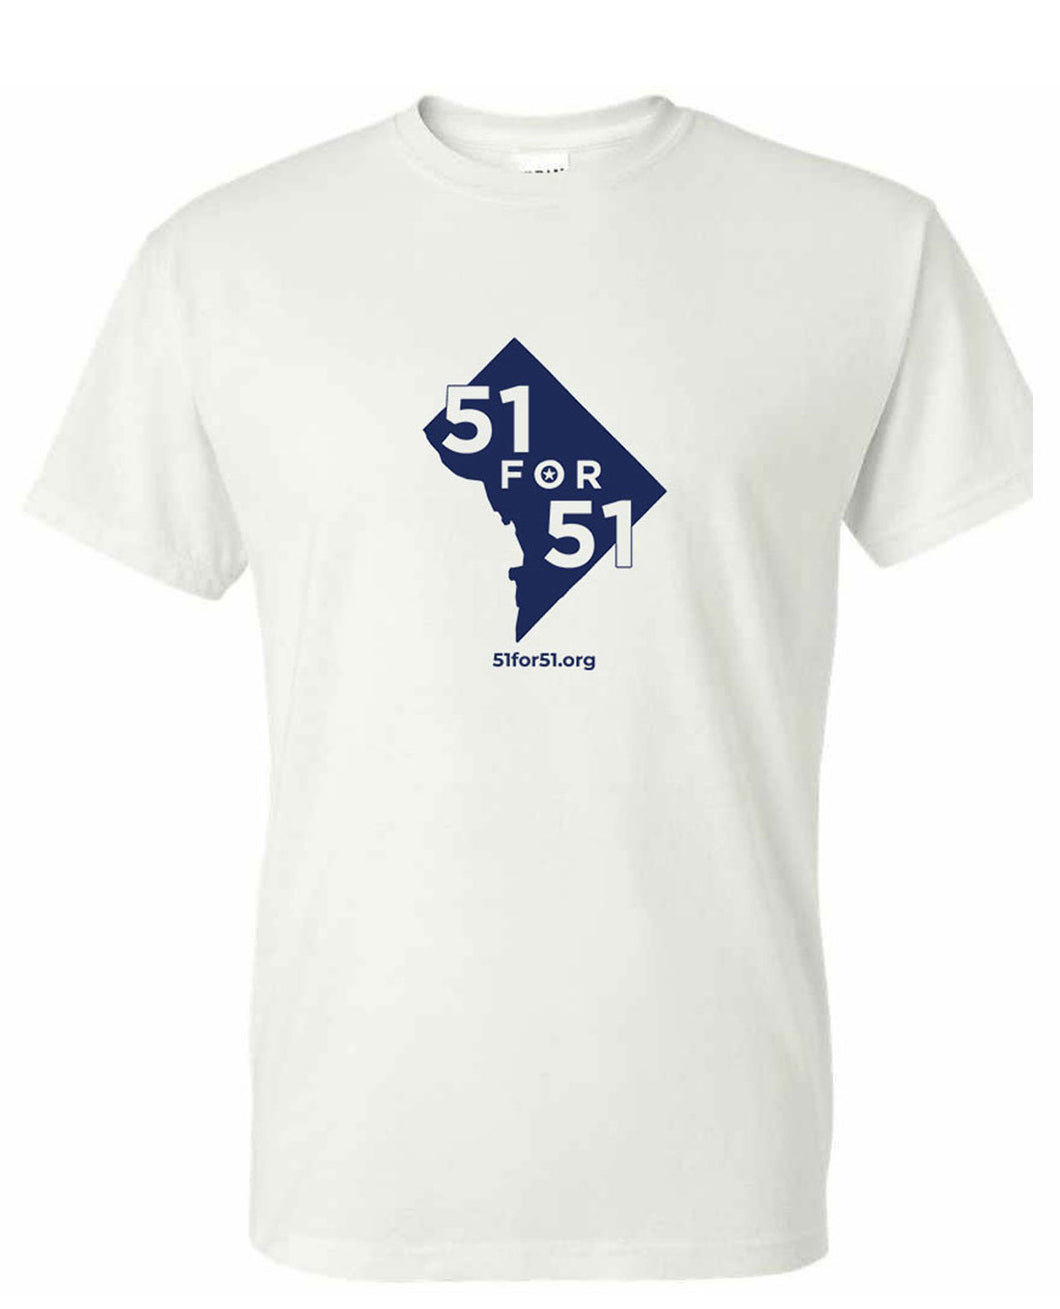 51 for 51 T-Shirt